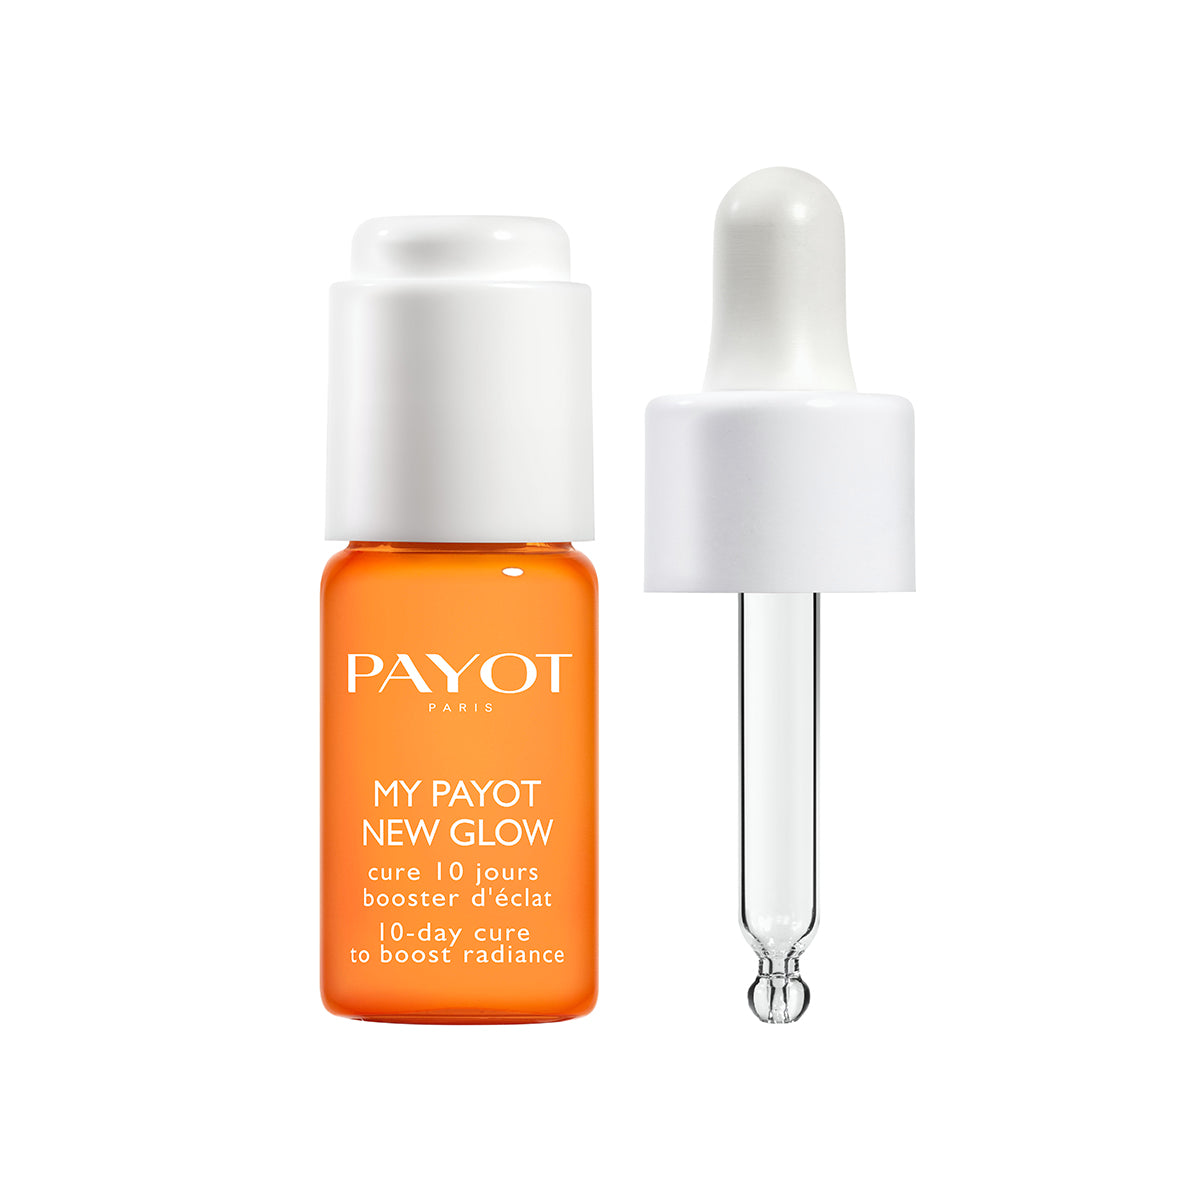 Payot My Payot Super Glow